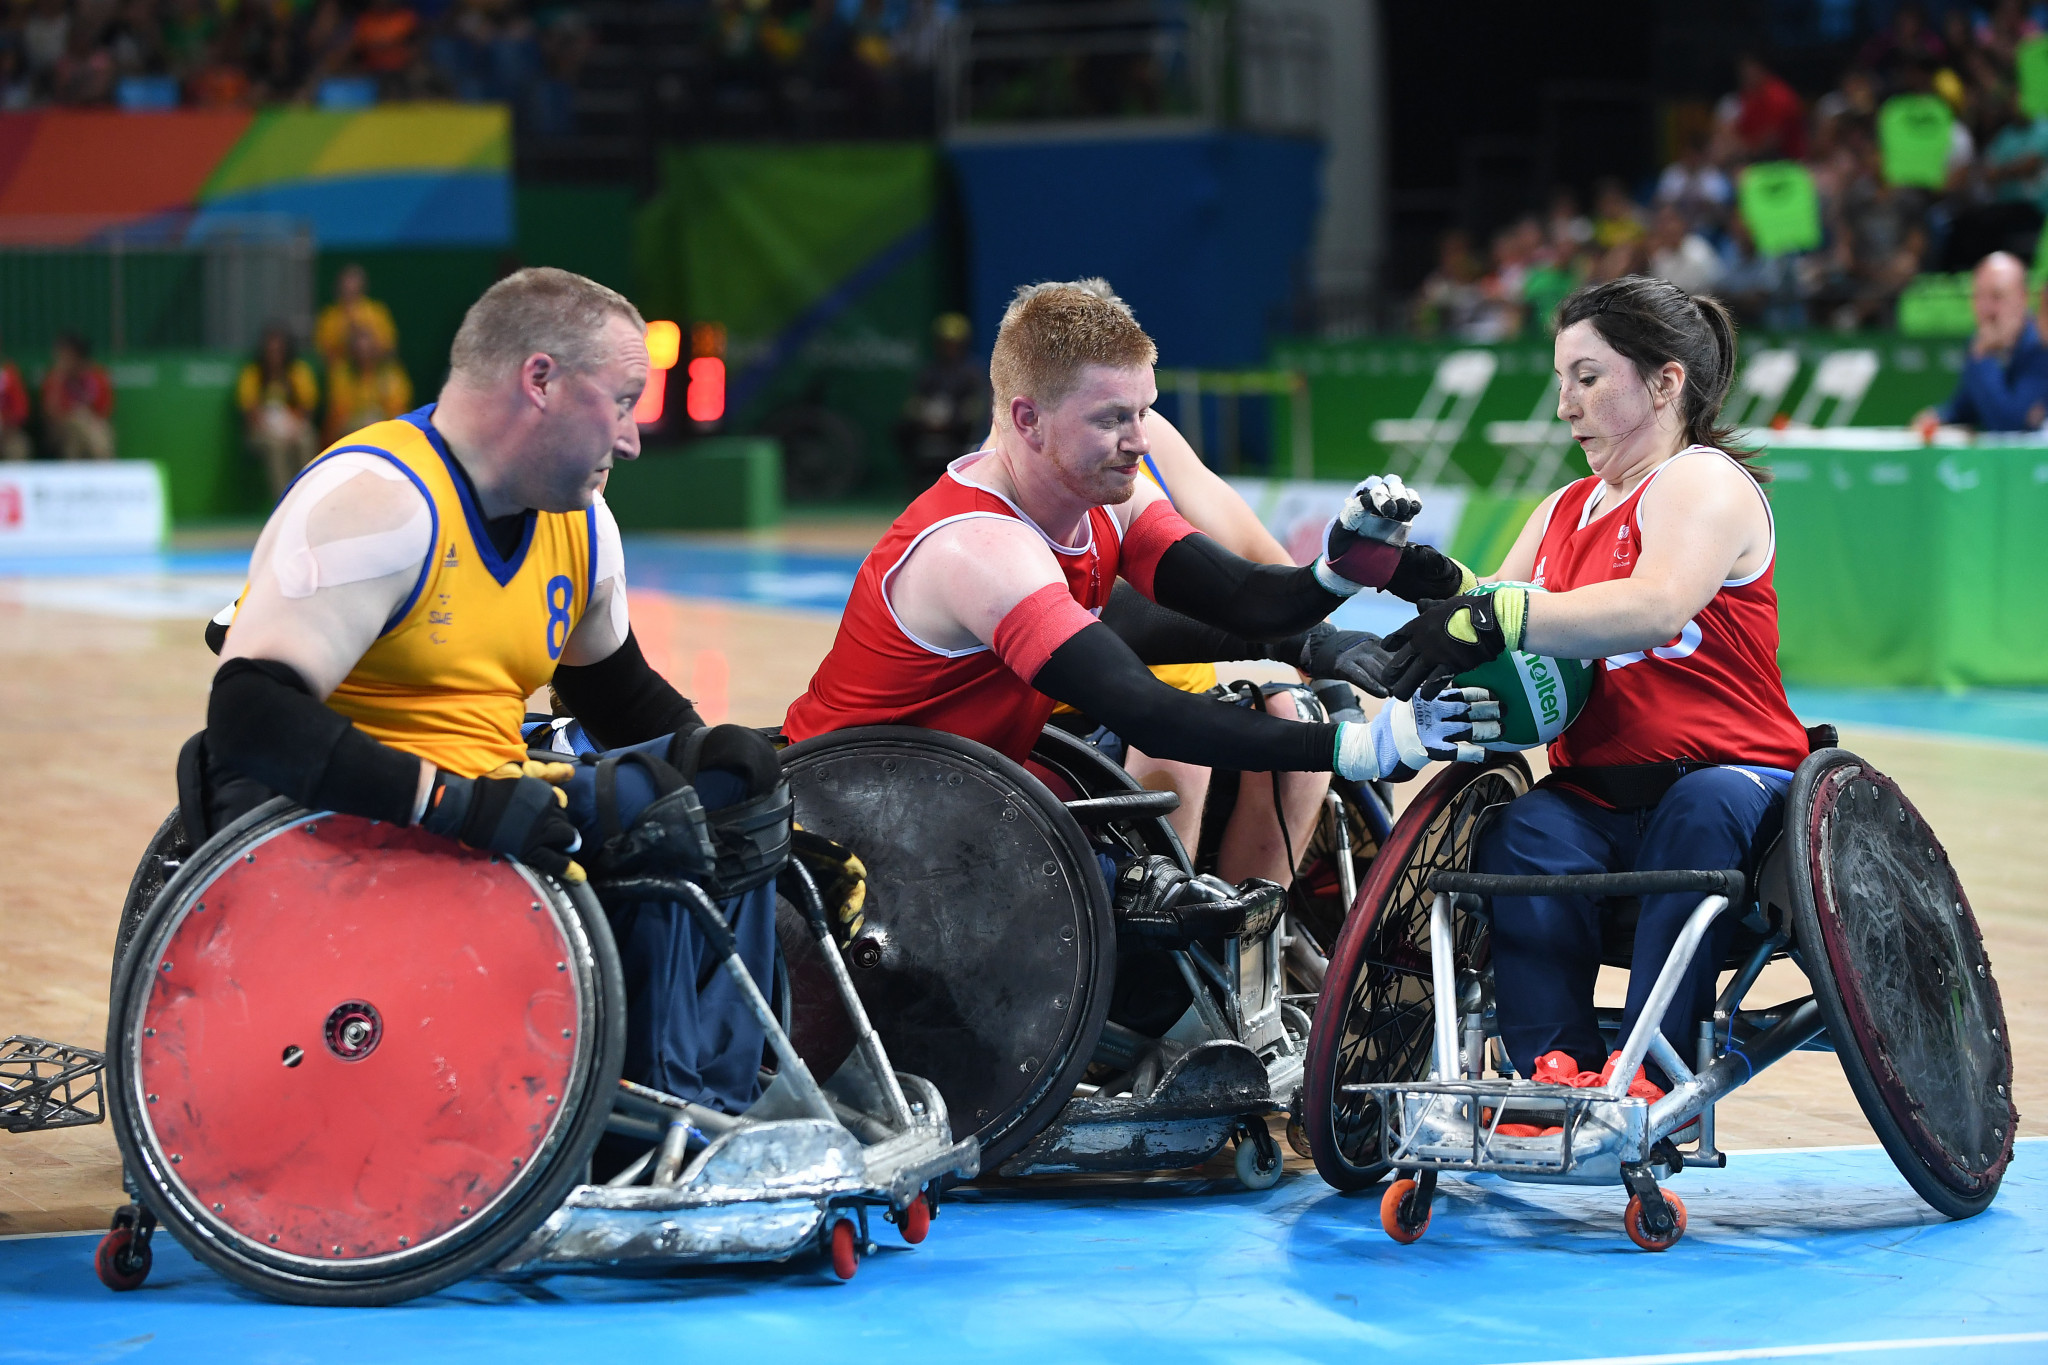 Britain's wheelchair rugby team, pictured at the Rio 2016 Paralympics, will receive £500,000 as part of a new UK Sport Aspiration Fund ©Getty Images